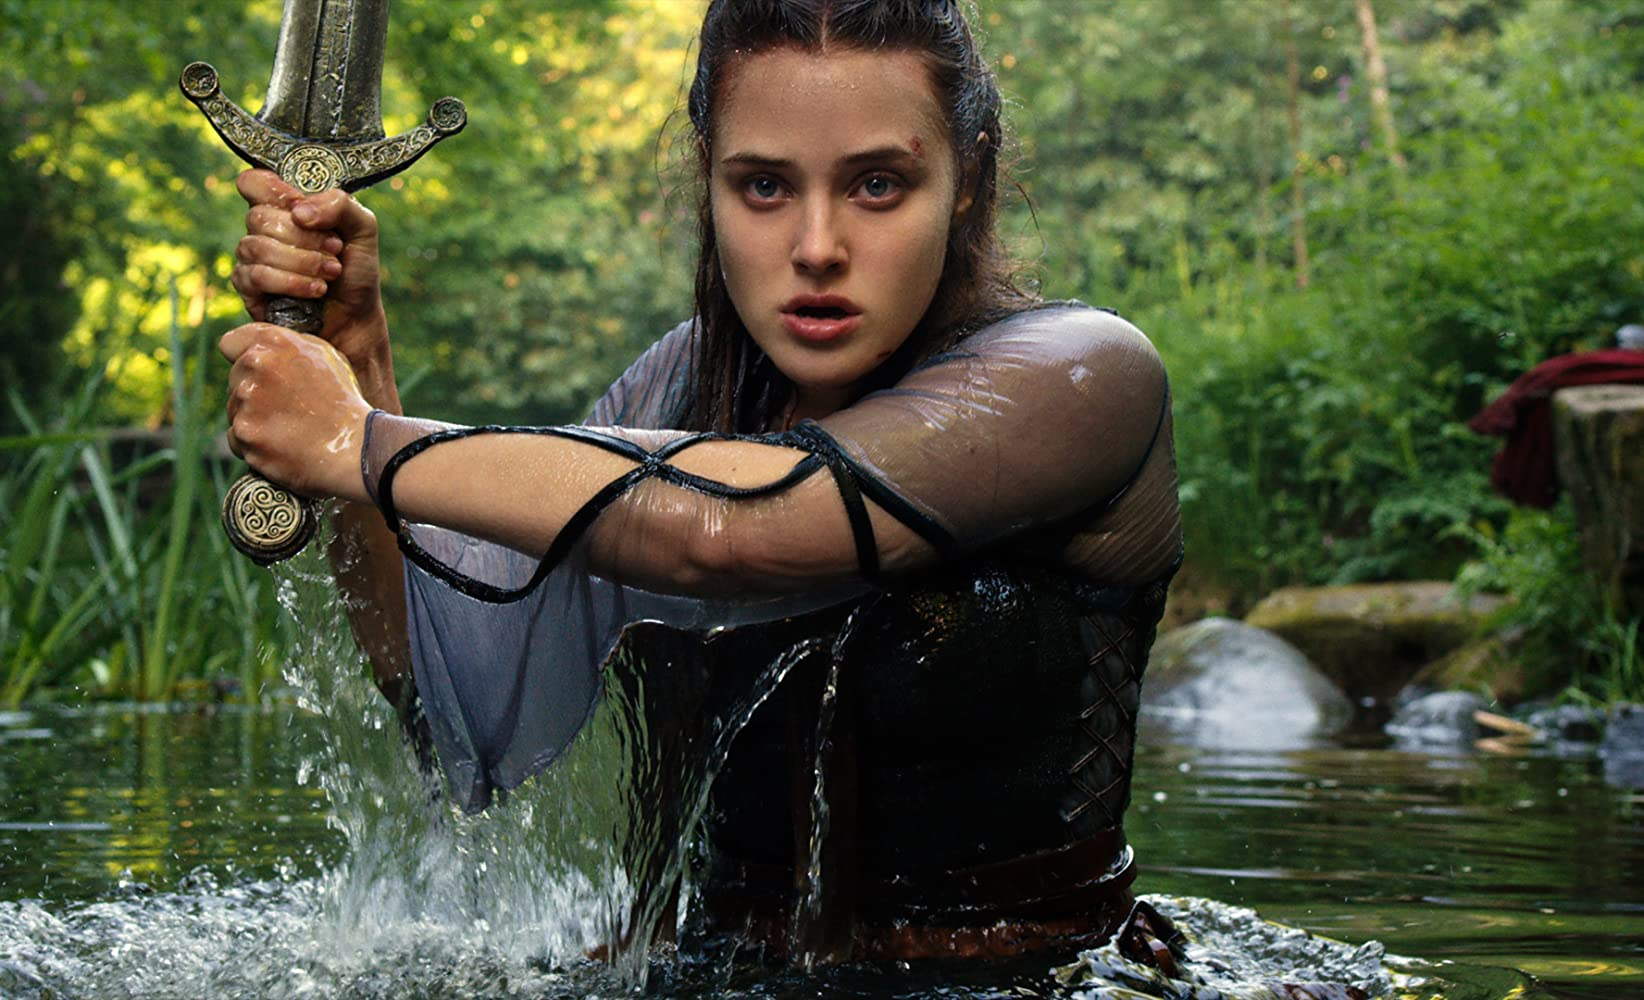 Cursed has enough to be enjoyed if you like medieval fantasy and feminist action heroes, though the series doesn't warrant a recommendation.